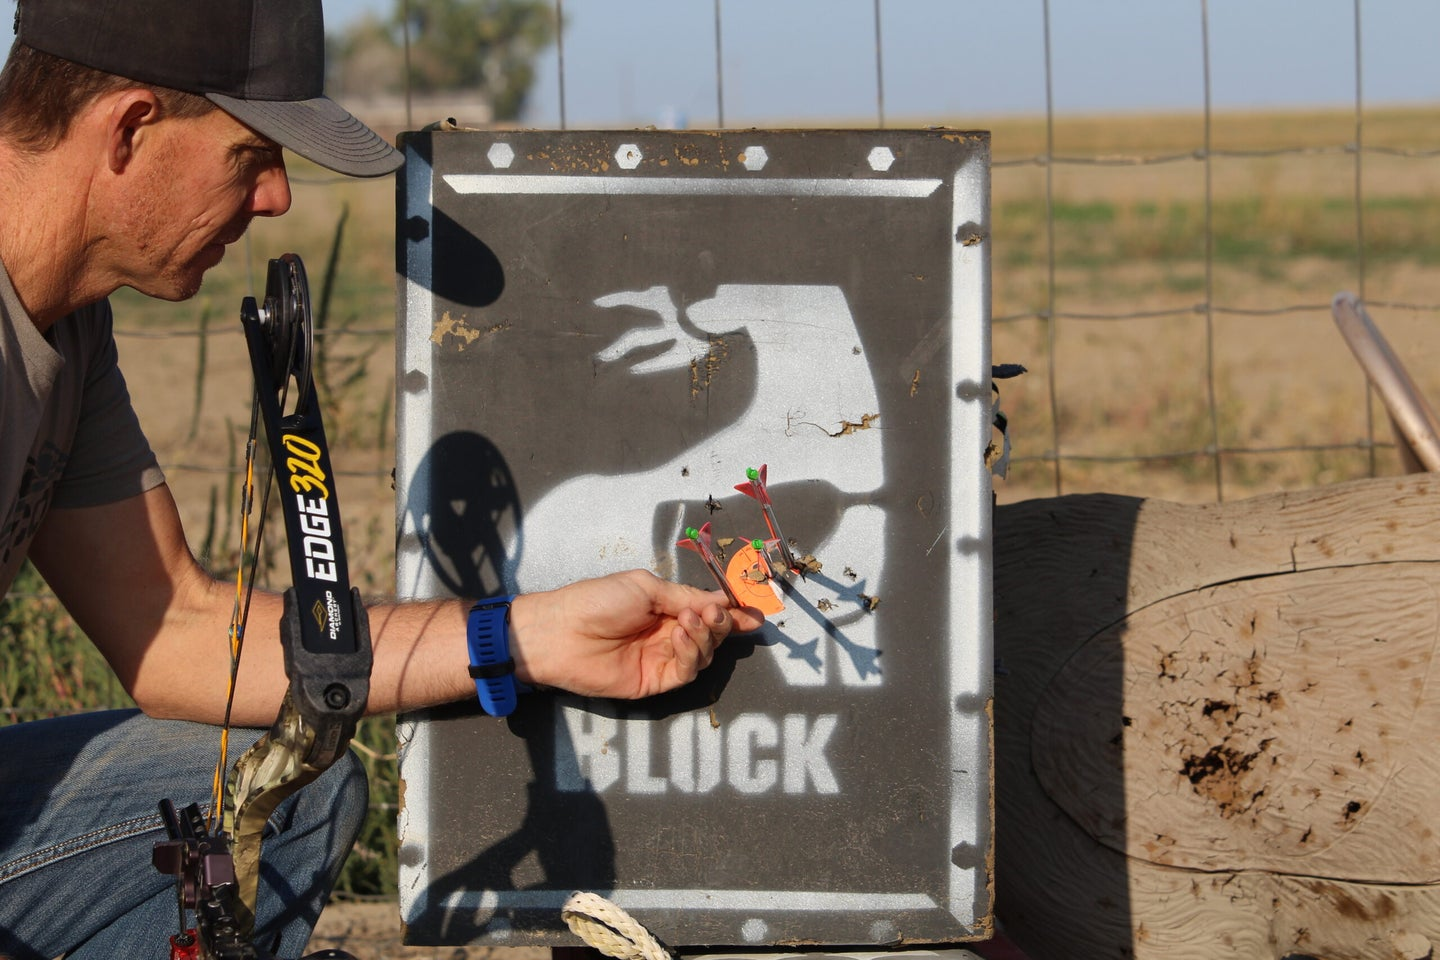 An archer examines arrow groups in a block target while holding a Diamond Edge 320 bow.